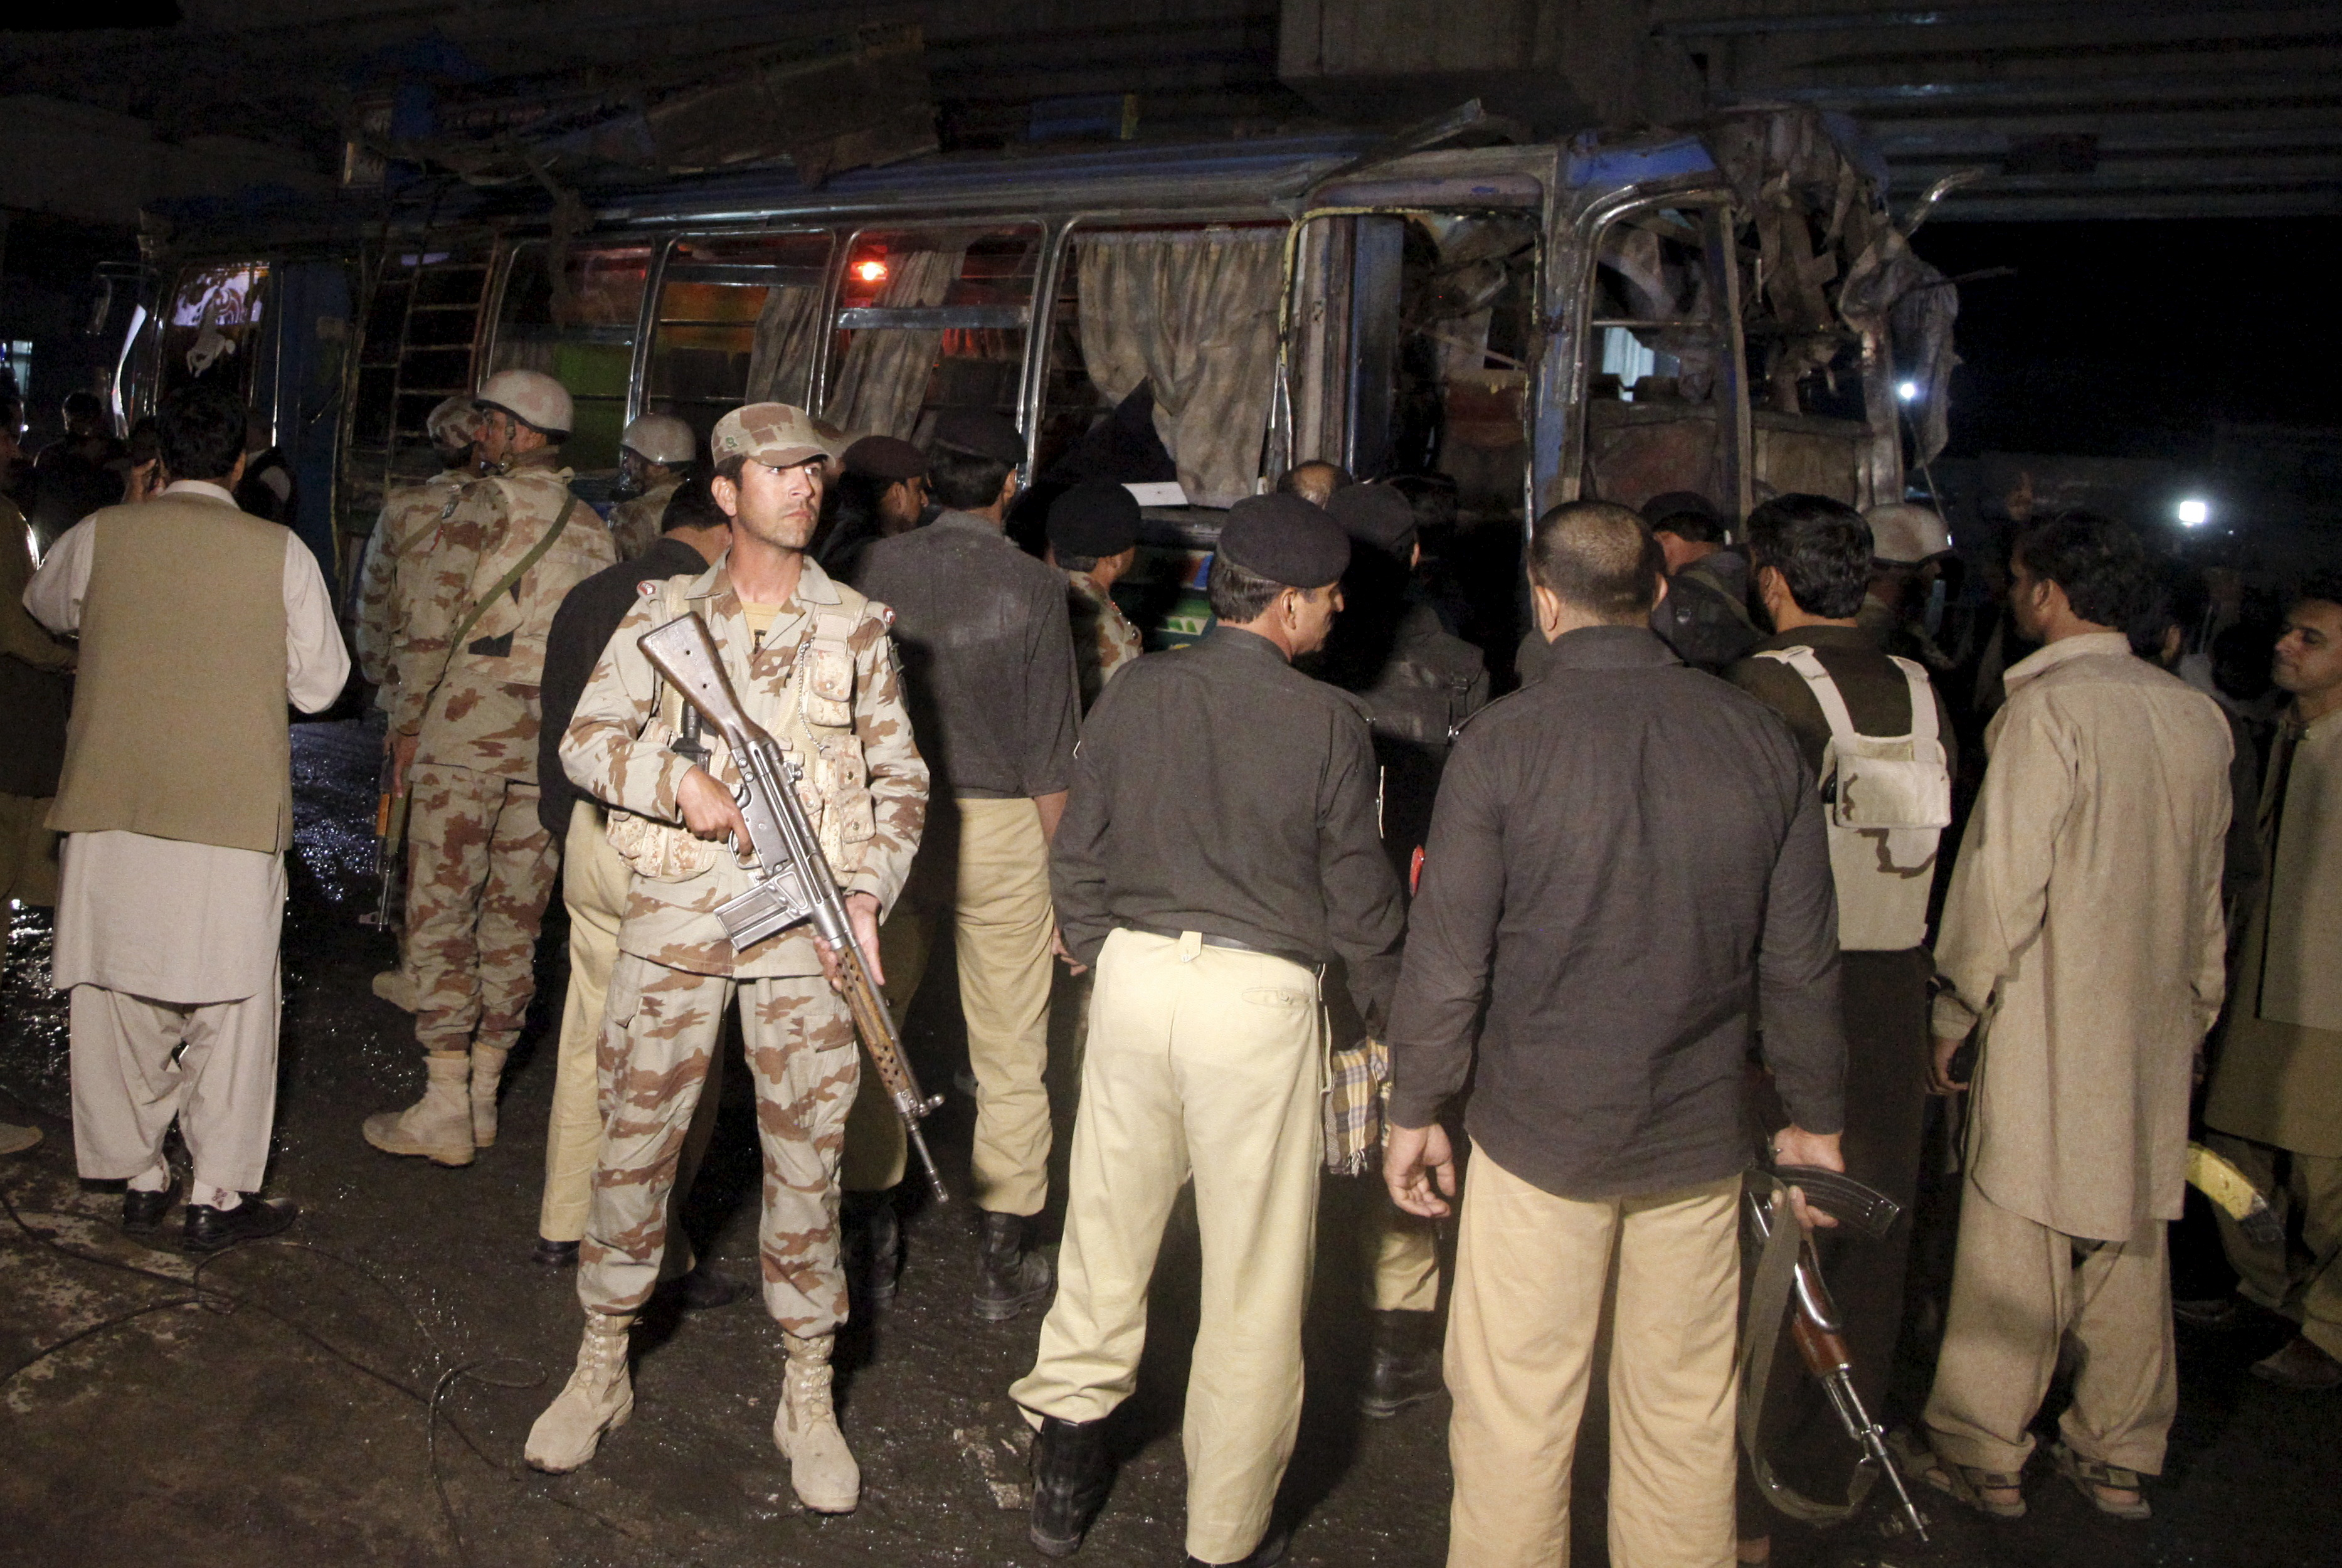 A soldier stands guard as rescue workers remove bodies from a bus after an explosion onboard as it was moving on Saryab road in Quetta, Pakistan October 19, 2015.